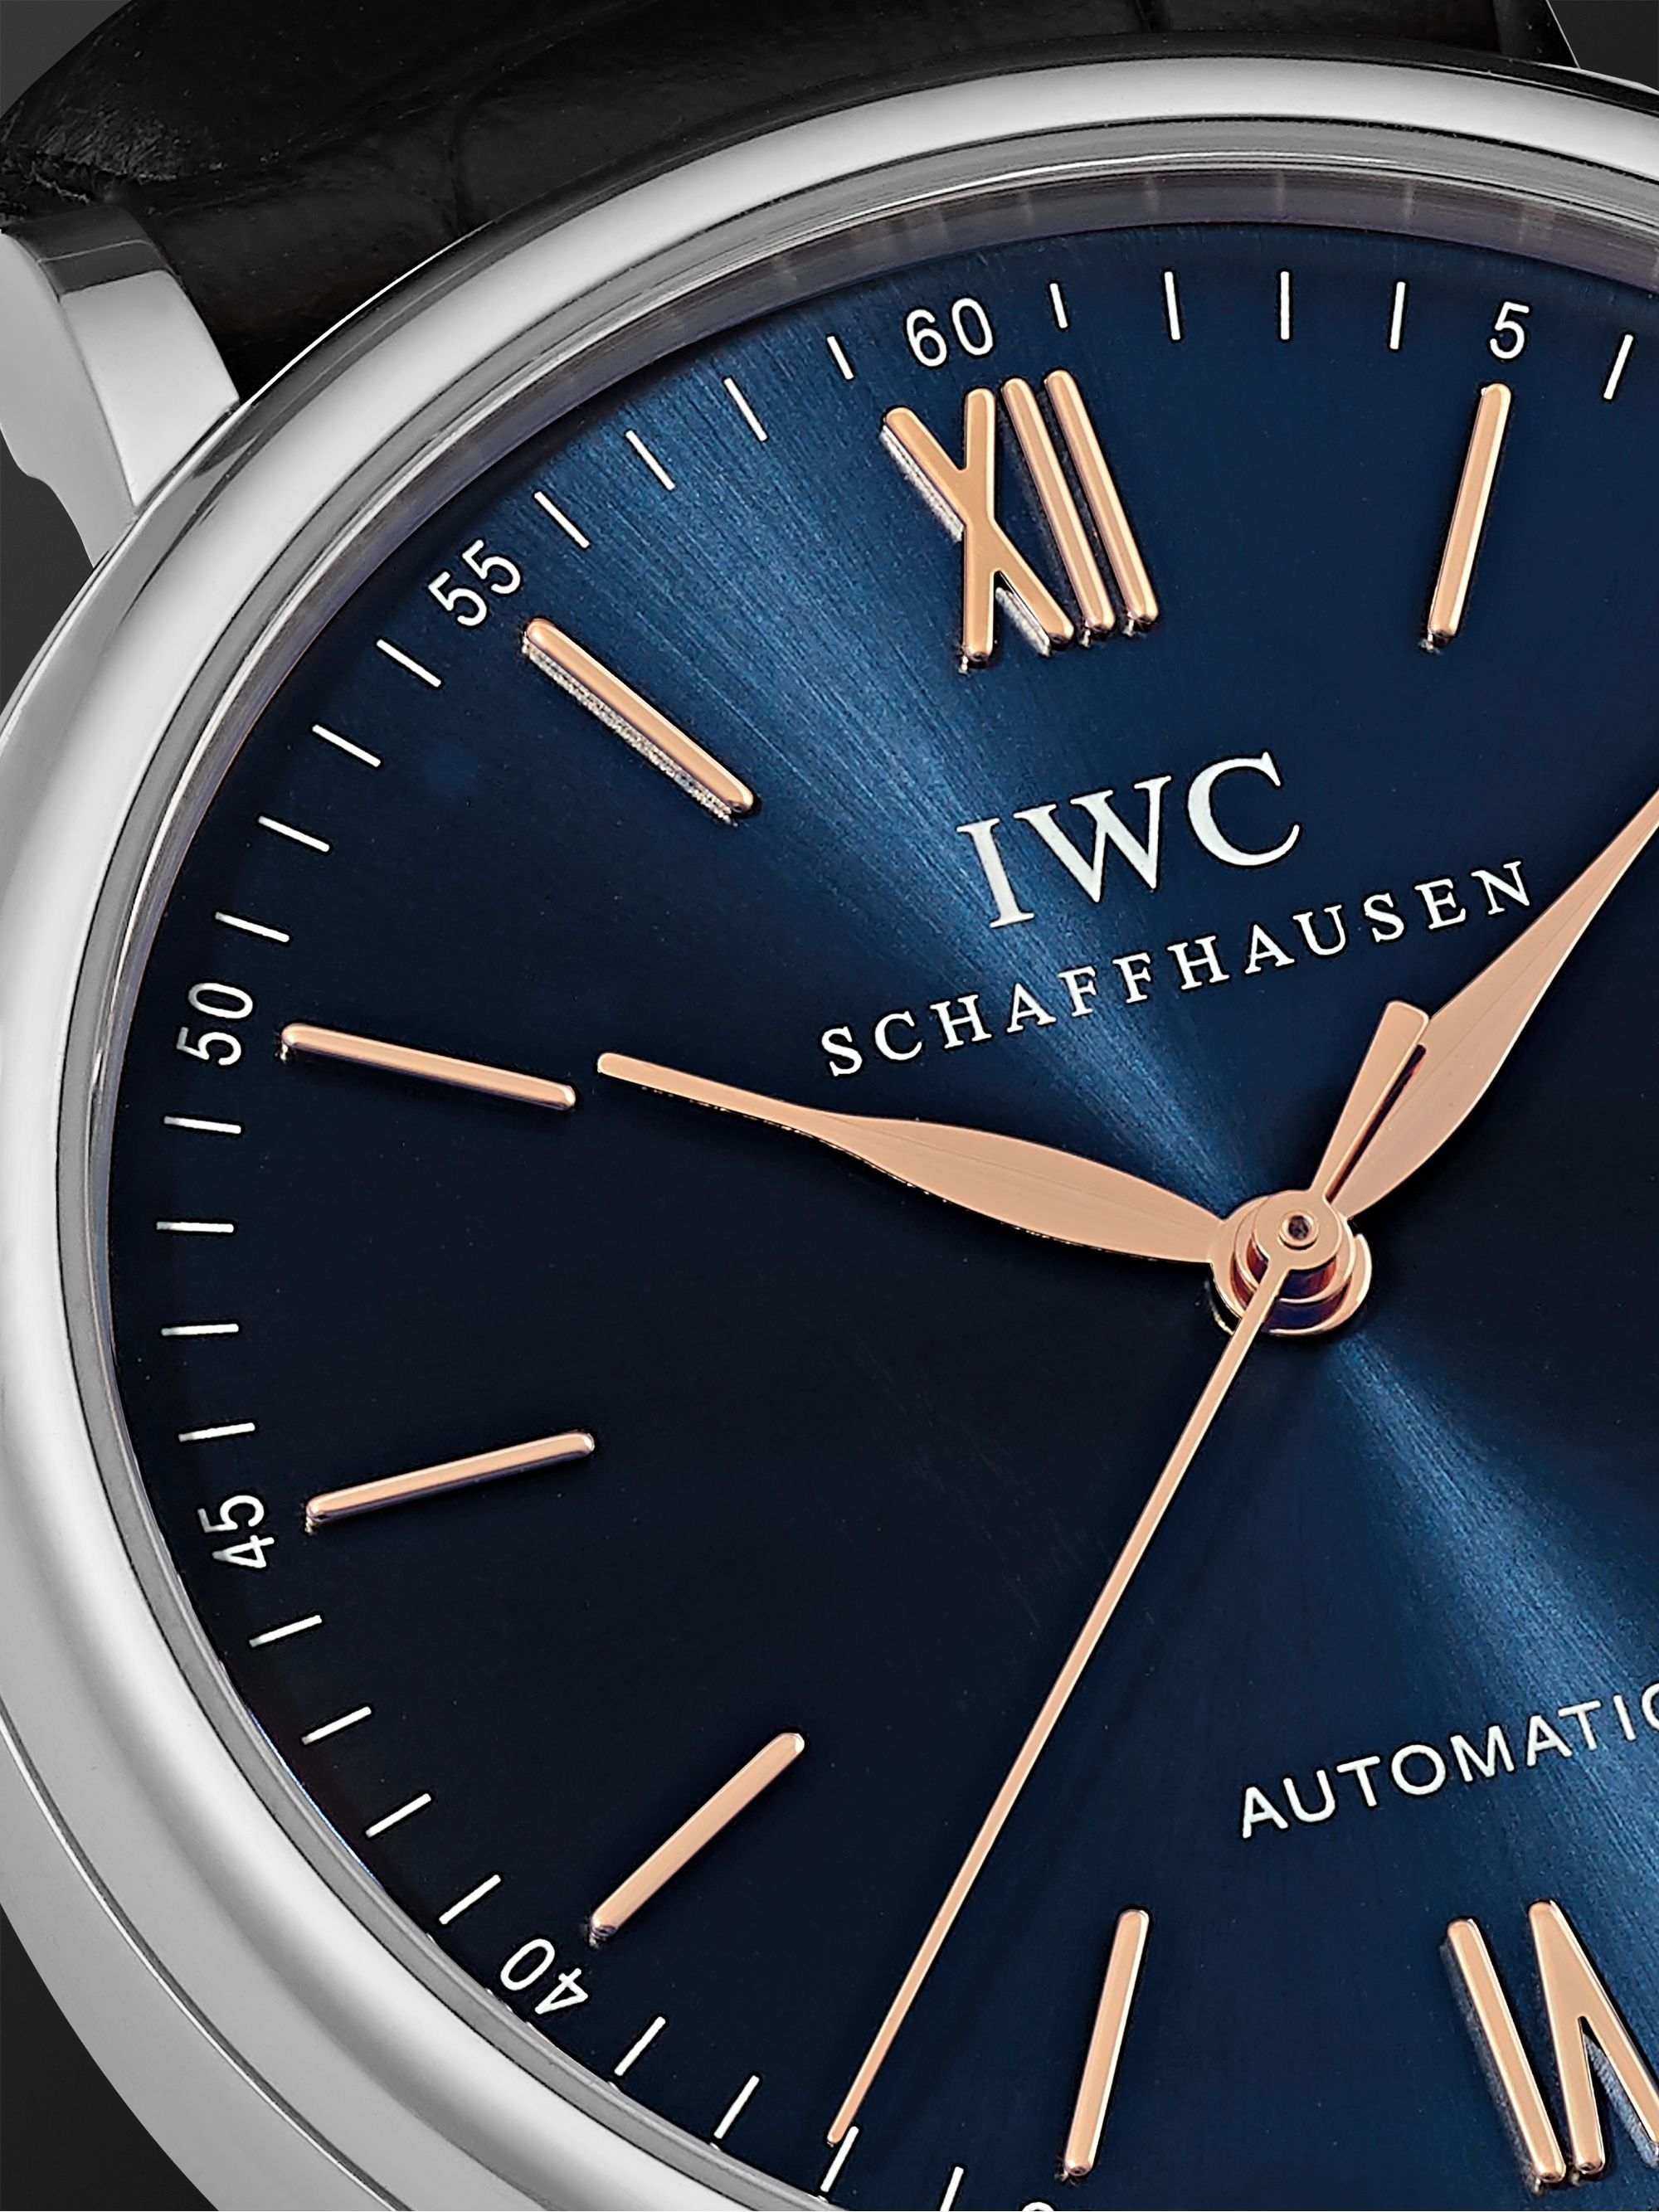 IWC SCHAFFHAUSEN Portofino Automatic 40mm Stainless Steel and Alligator Watch, Ref. No. IW356523